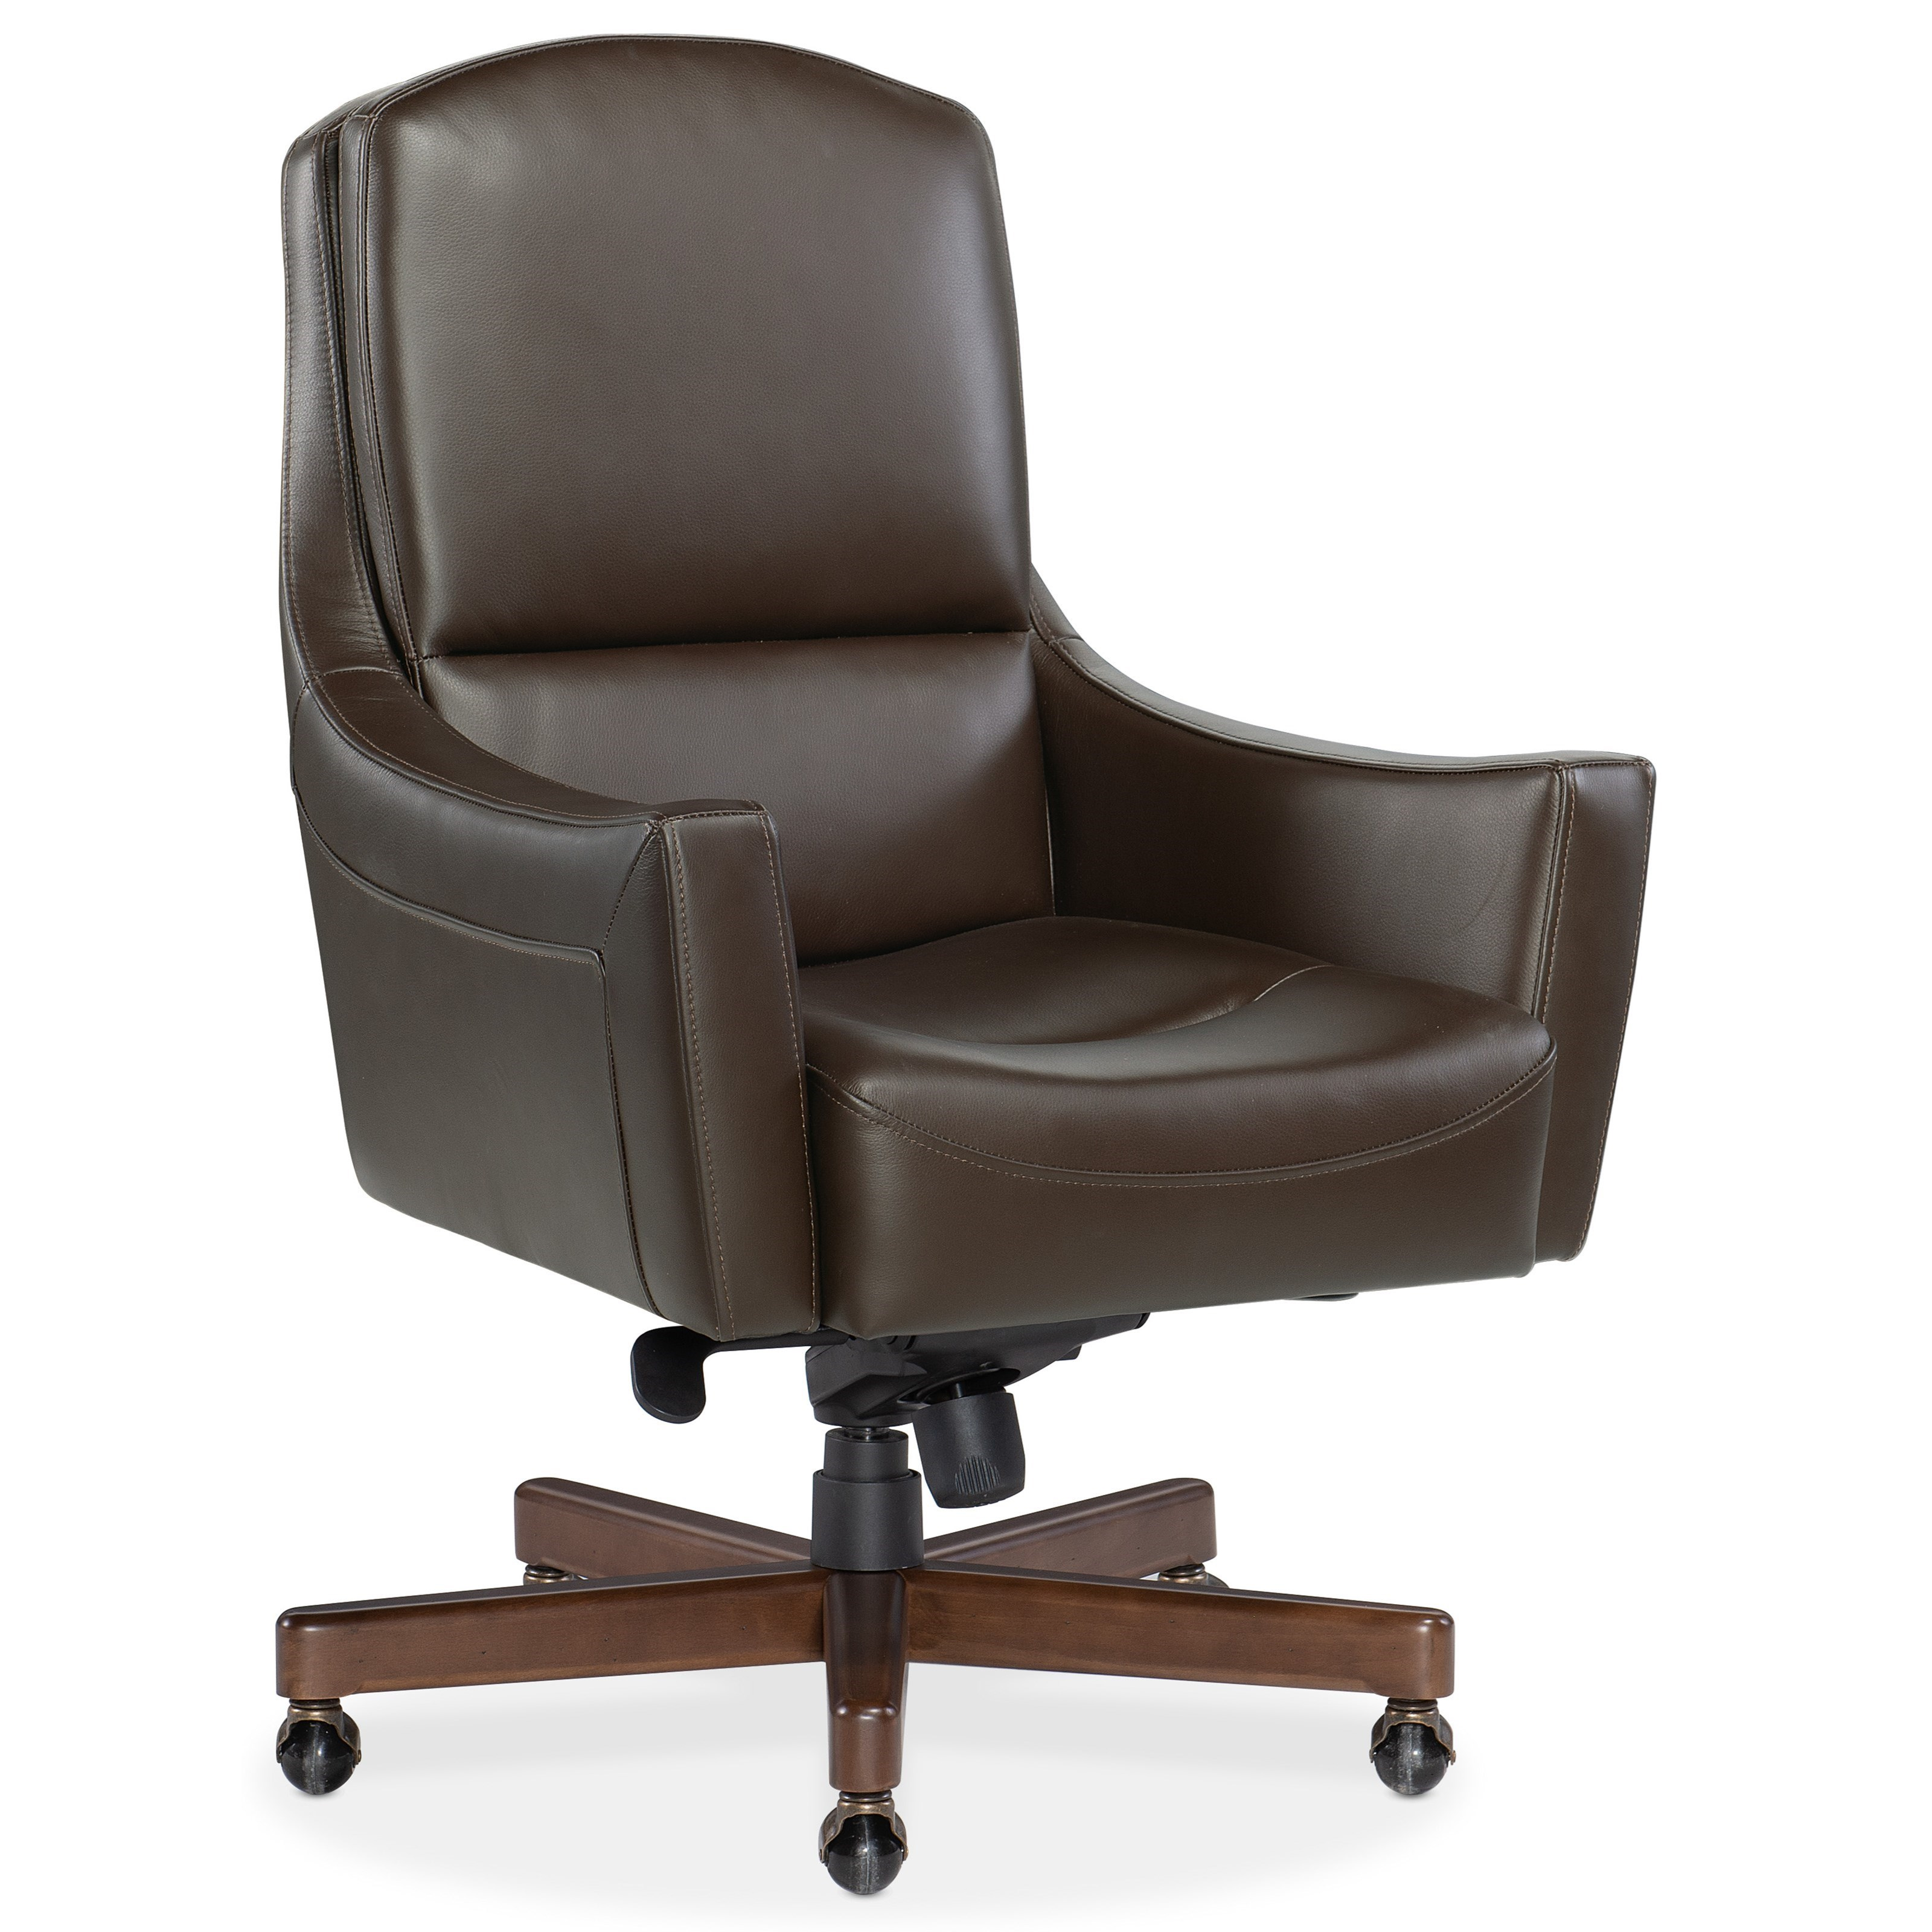 Executive Seating Wasila Executive Swivel Tilt Chair by Hooker Furniture at Zak's Home